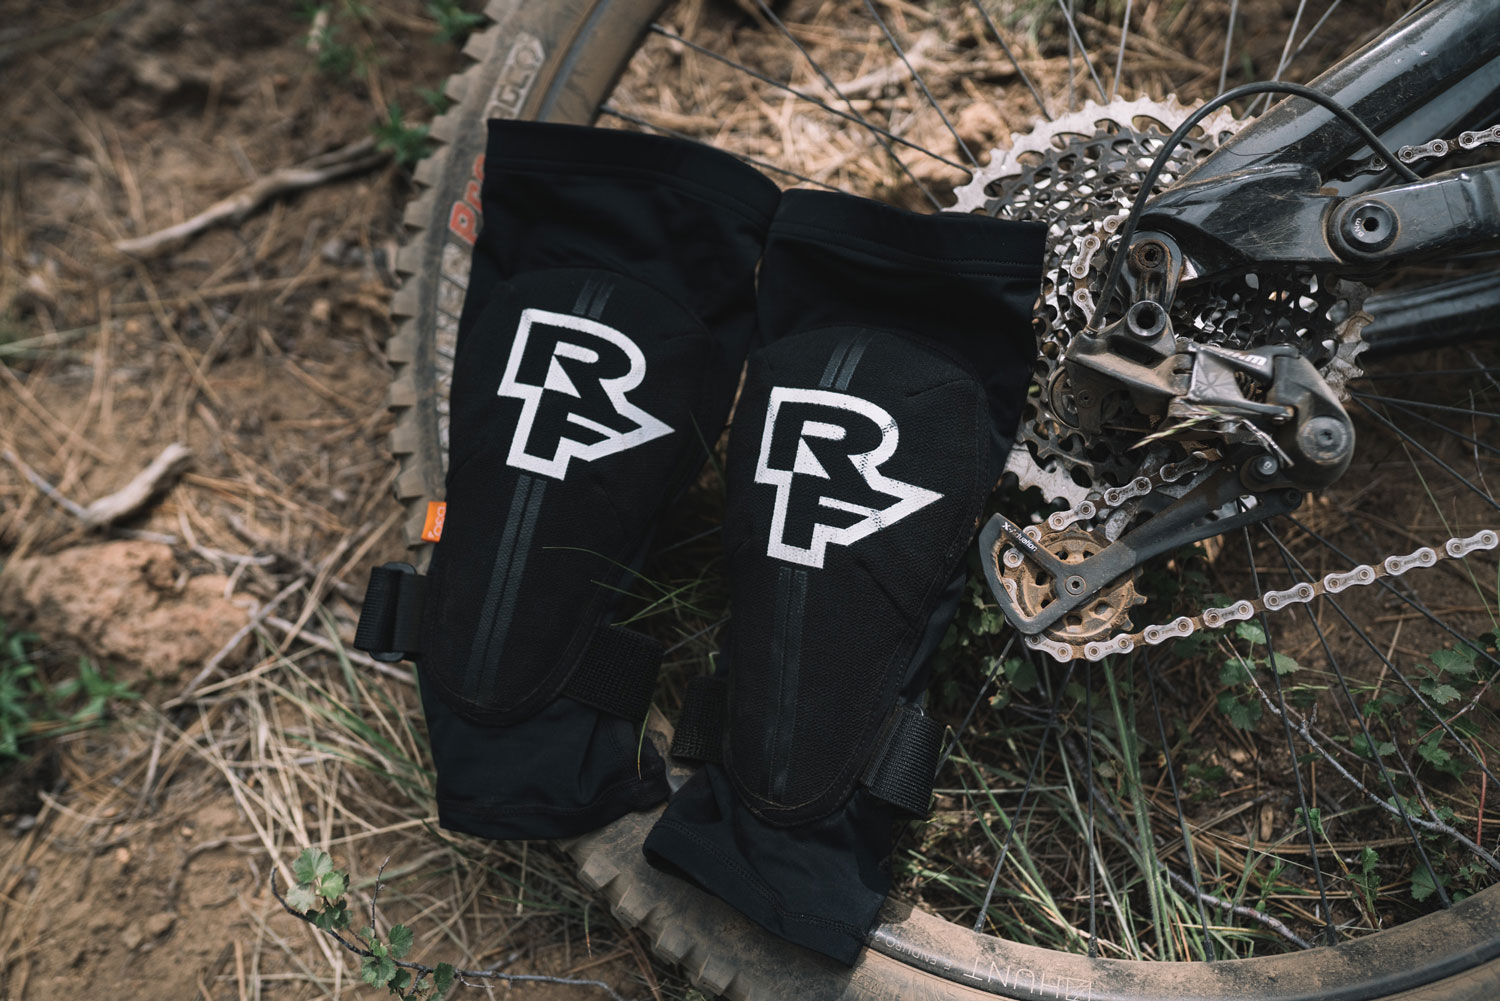 Race Face Indy Knee Pad Review